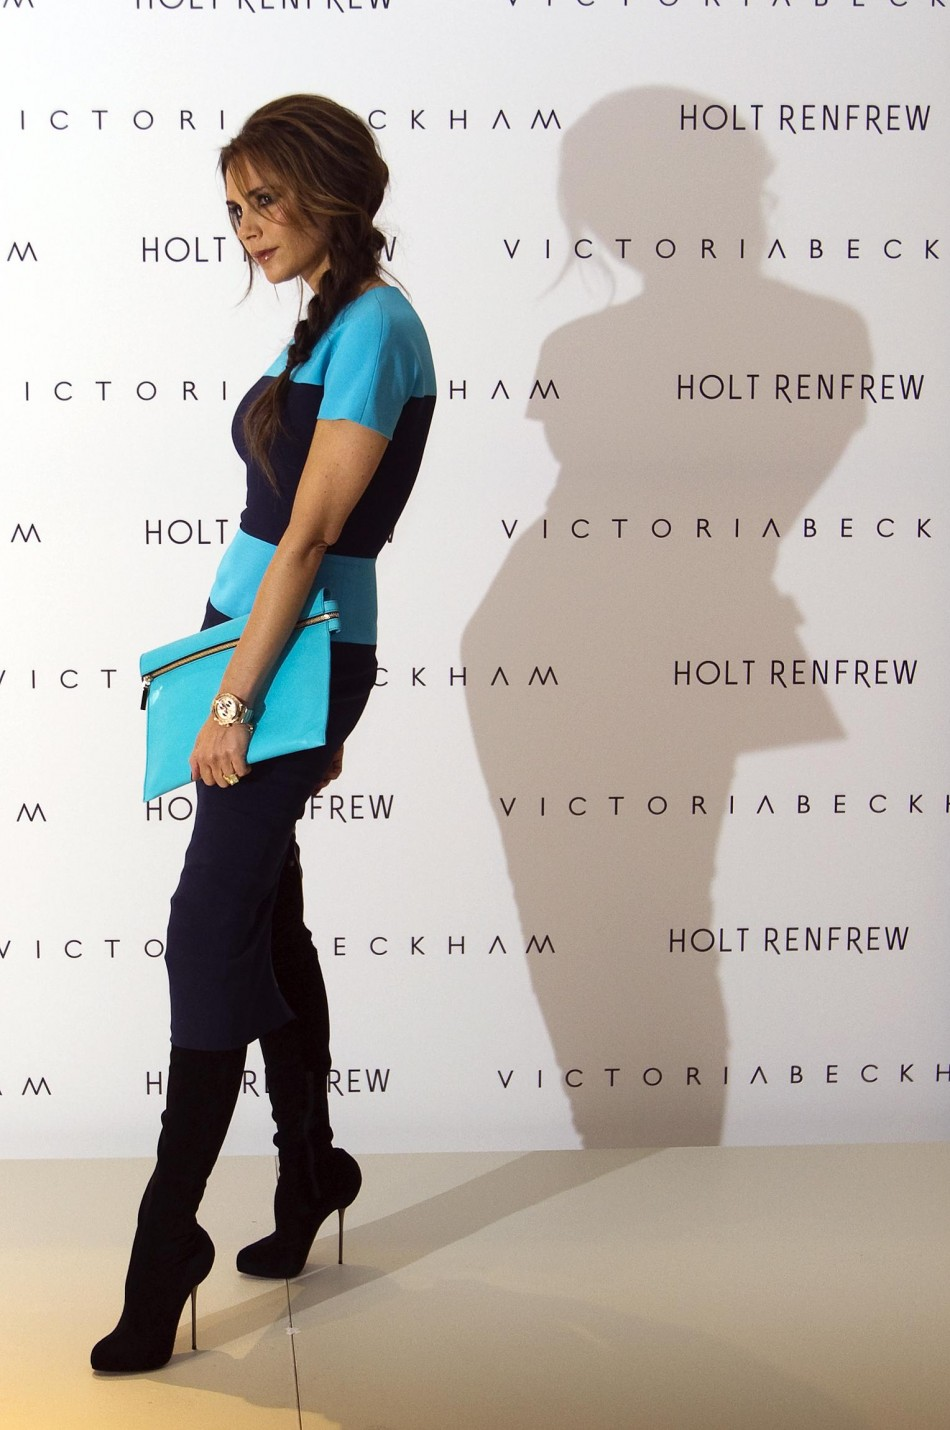 Victoria Beckham poses for the media and fans at Holt Renfrew Vancouver while in town prompting her fashion line in Vancouver